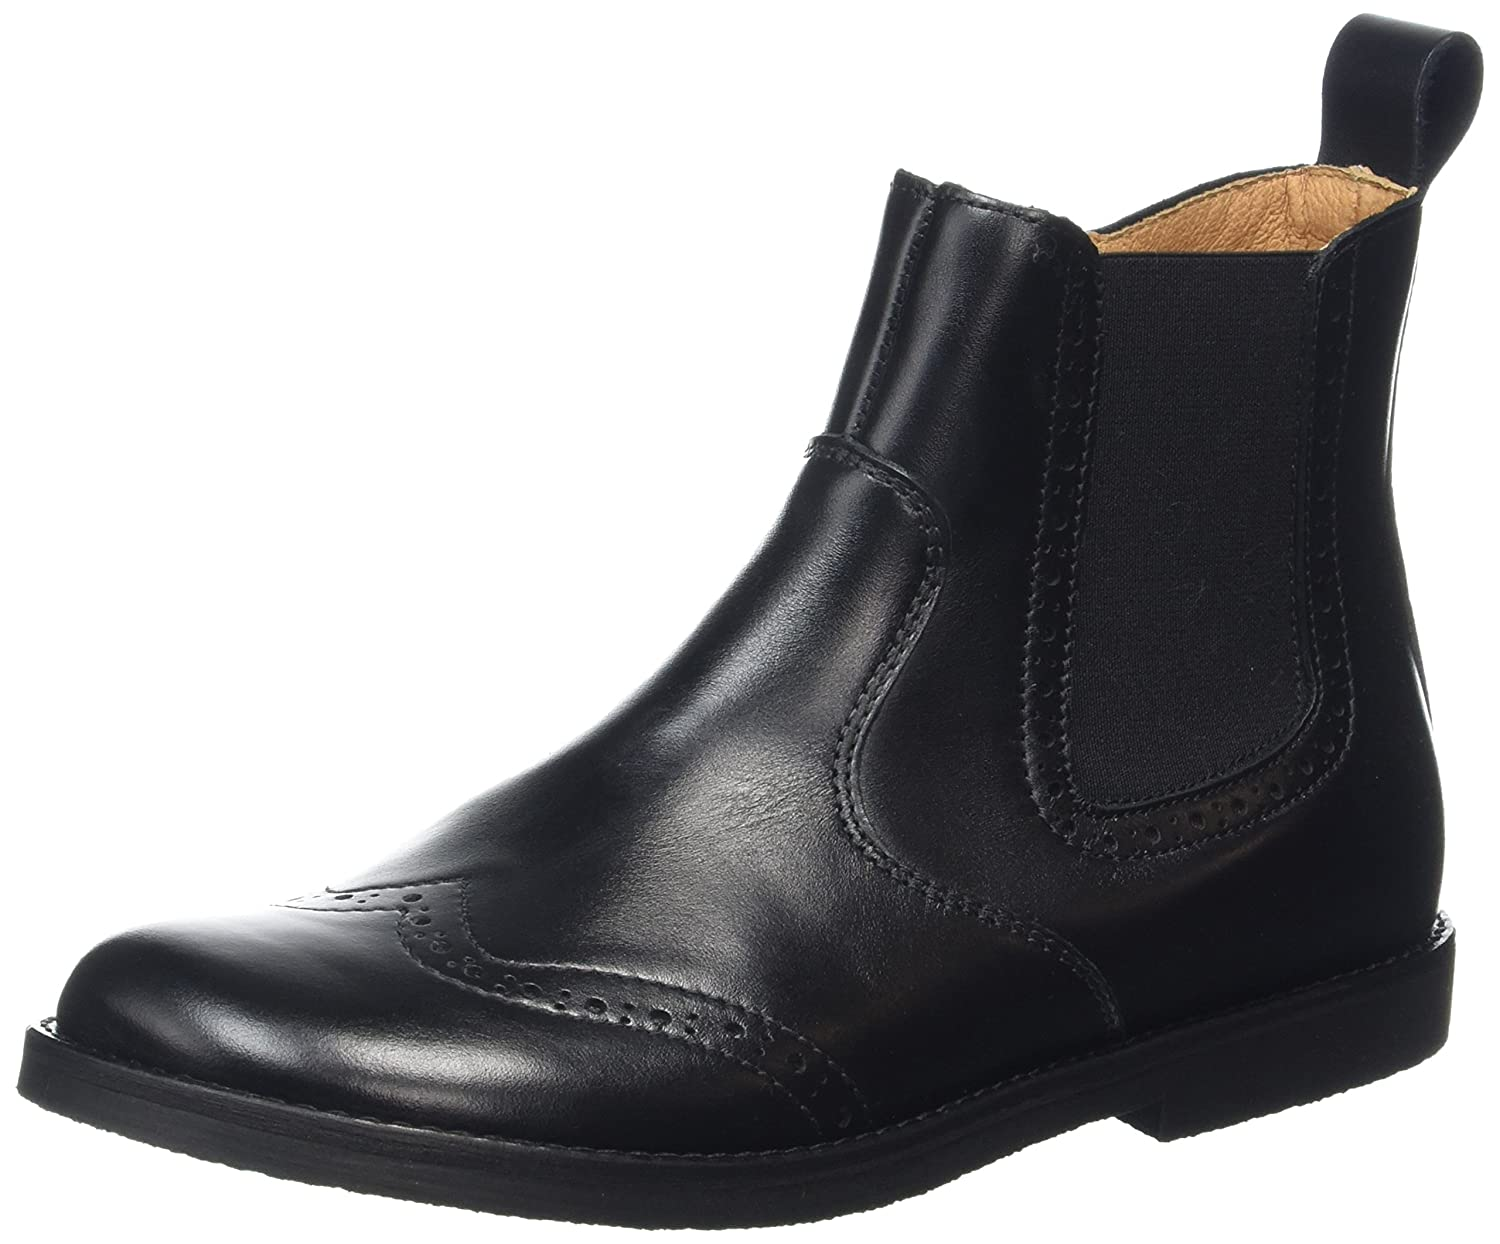 FRODDO Unisex Kids Chelsea Ankle Boot Black G3160061, Bottes Mixte Enfant